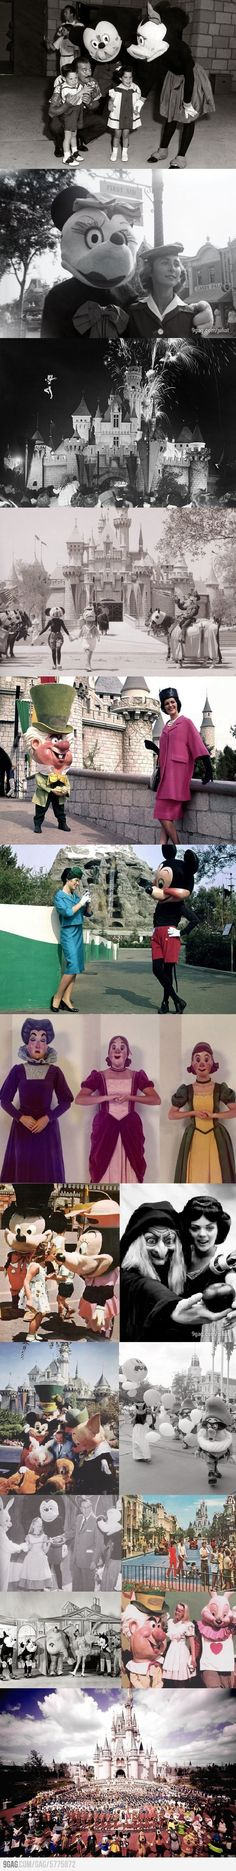 Old photos from Disneyland ok when i was a kid i was scared of people in suits like winnie the pooh and mickey but im starting to think some of the costumes were the reason i was scared O.o